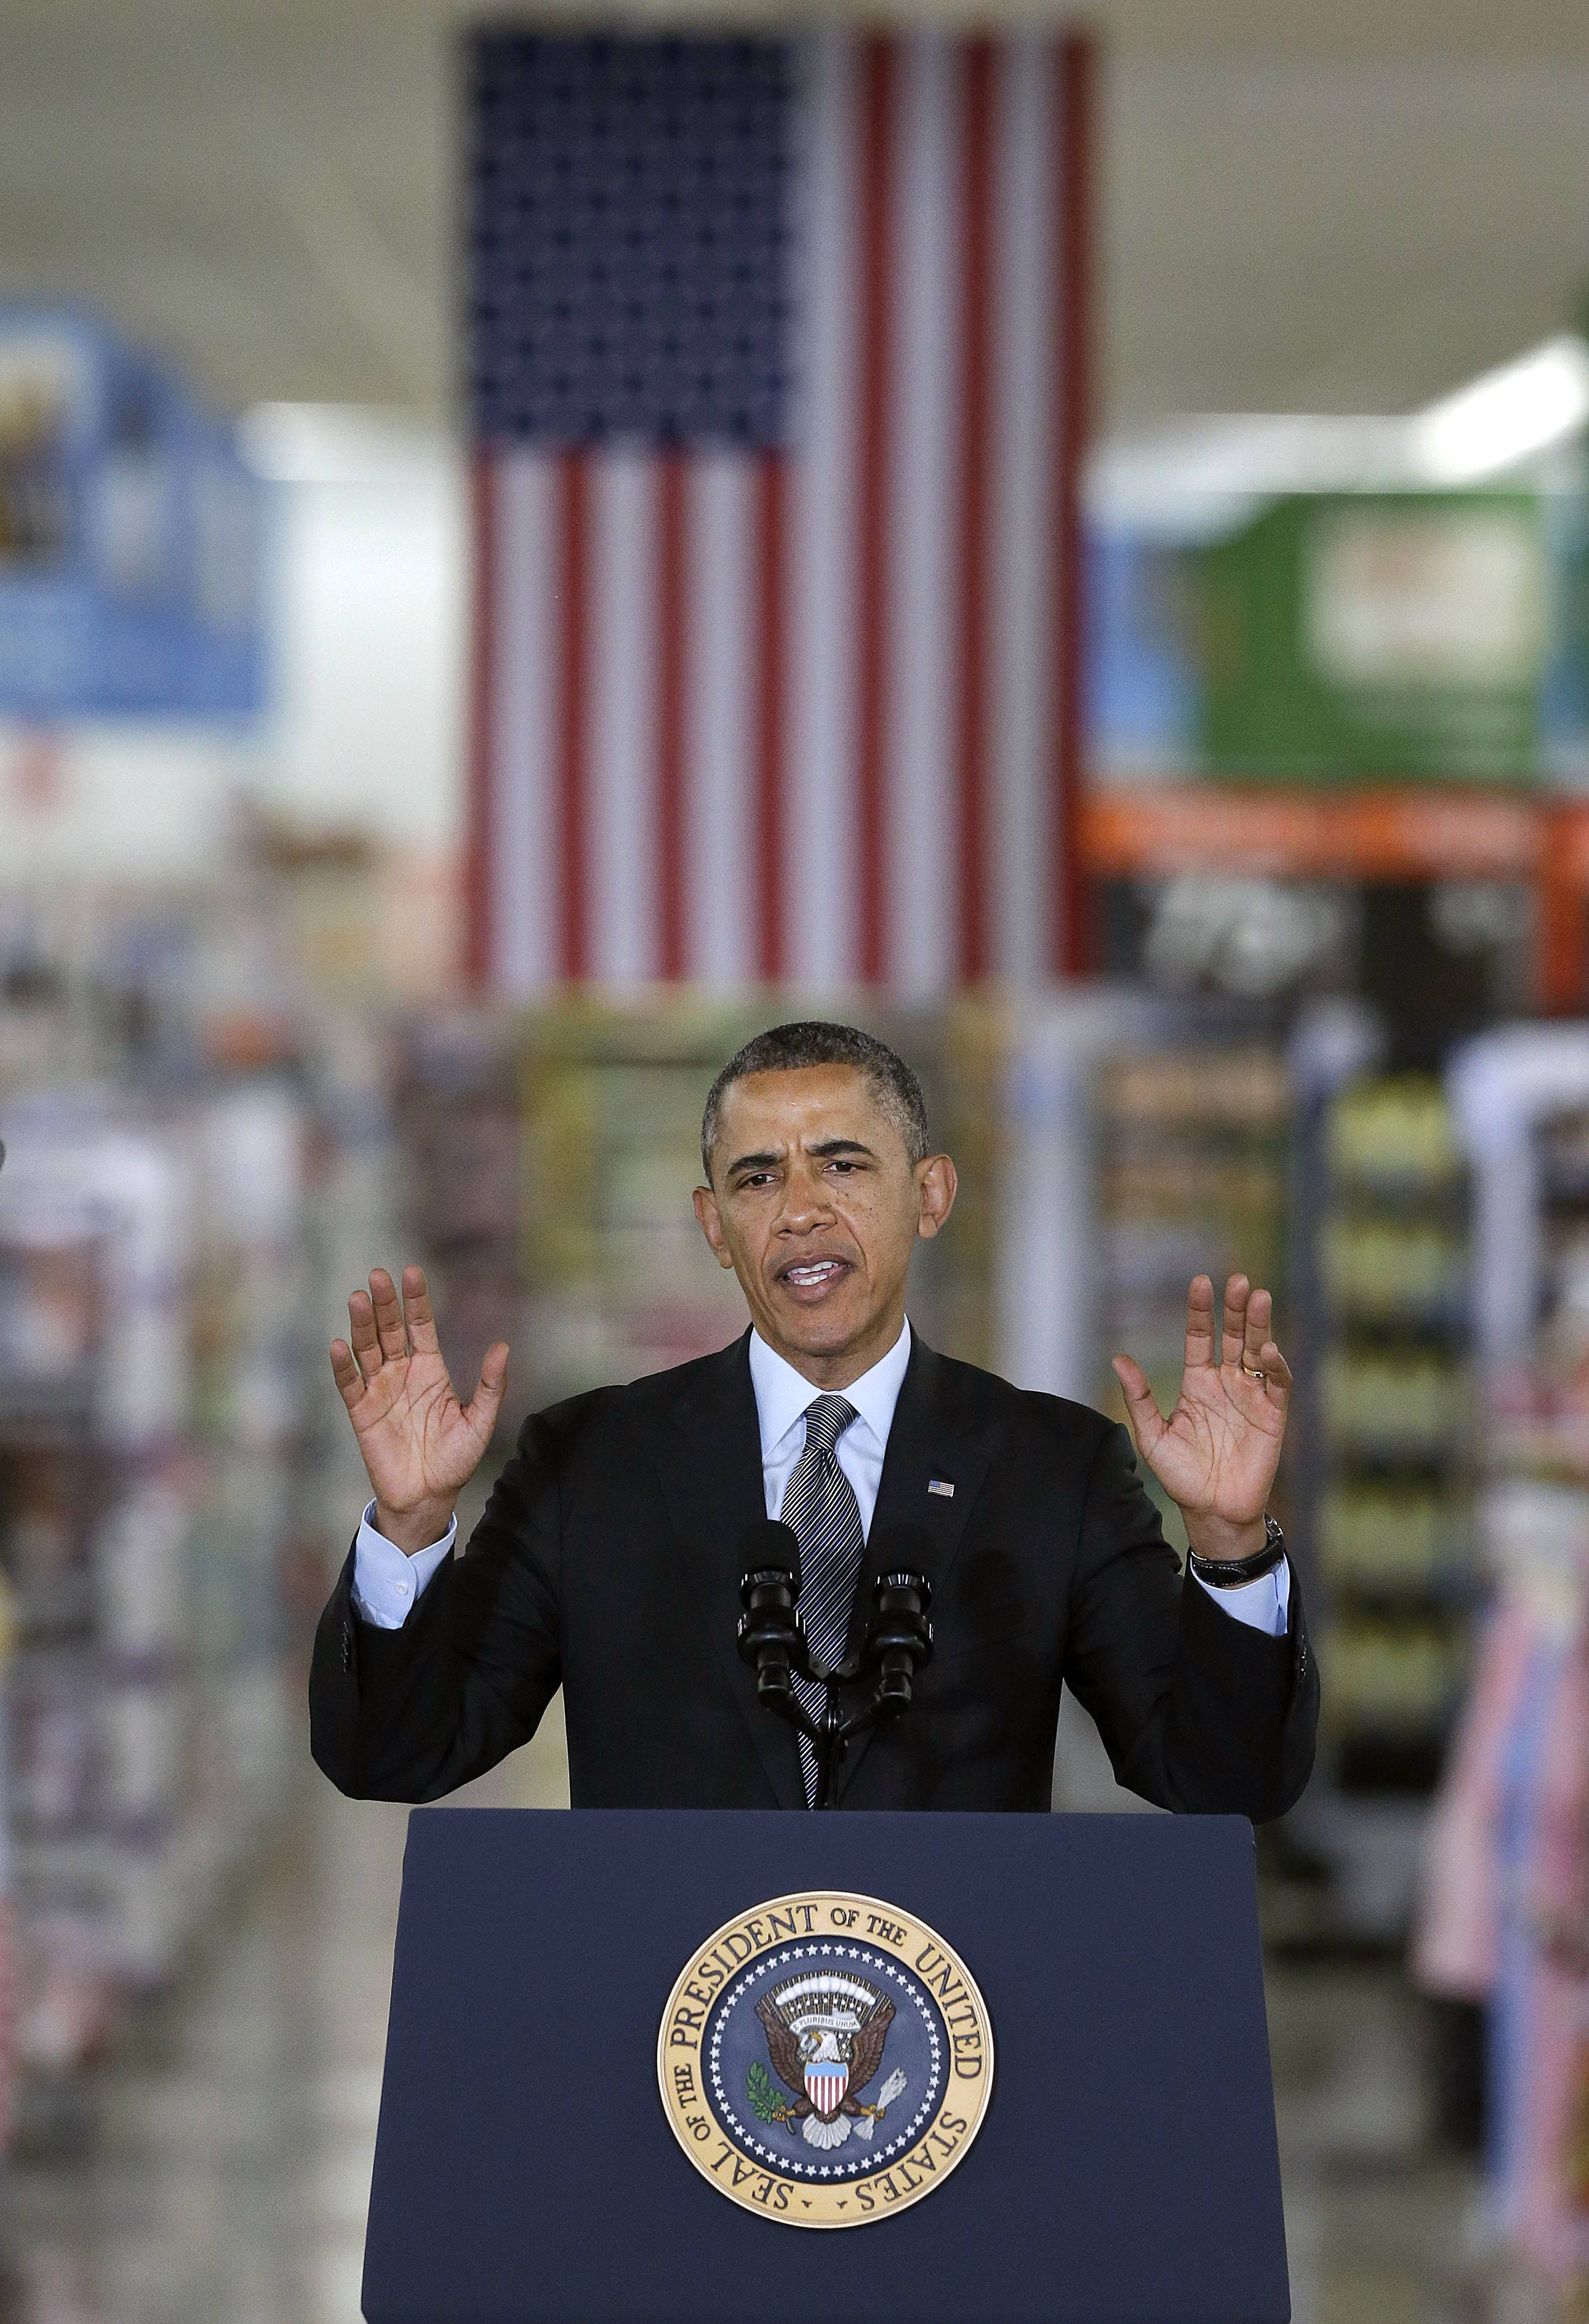 President Barack Obama speaks at a Walmart store Friday in Mountain View, Calif. Obama announced new steps by companies, local governments and his own administration to deploy solar technology.